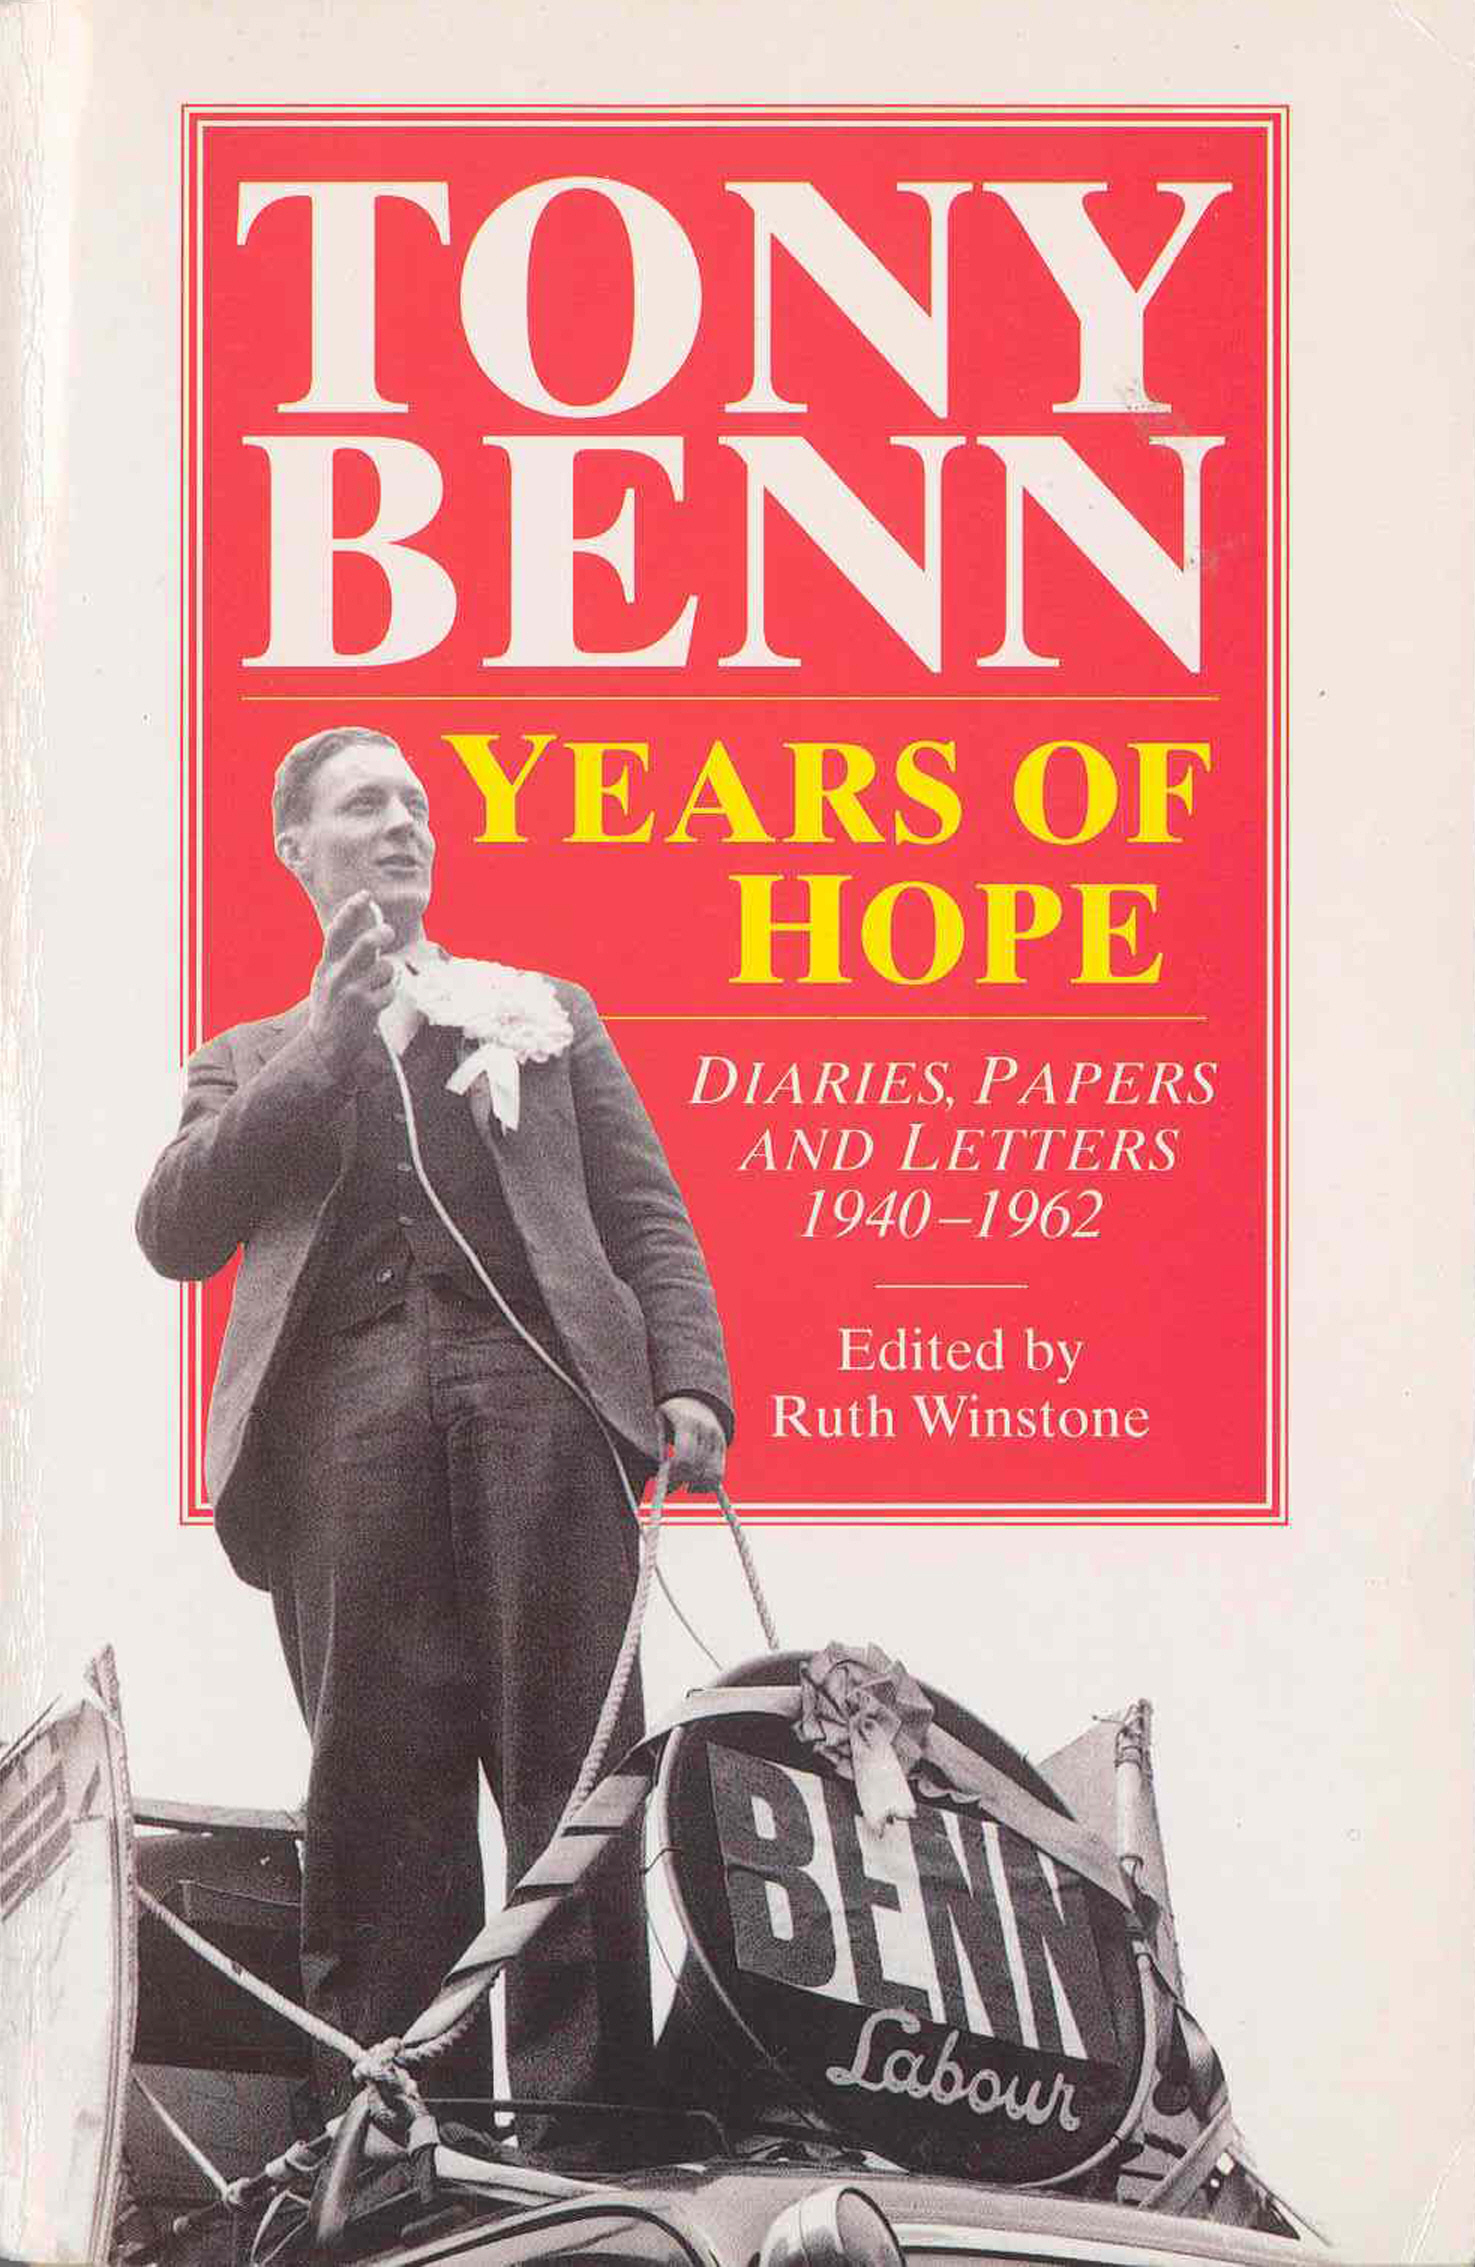 Years Of Hope Diaries, Letters and Papers 1940-1962